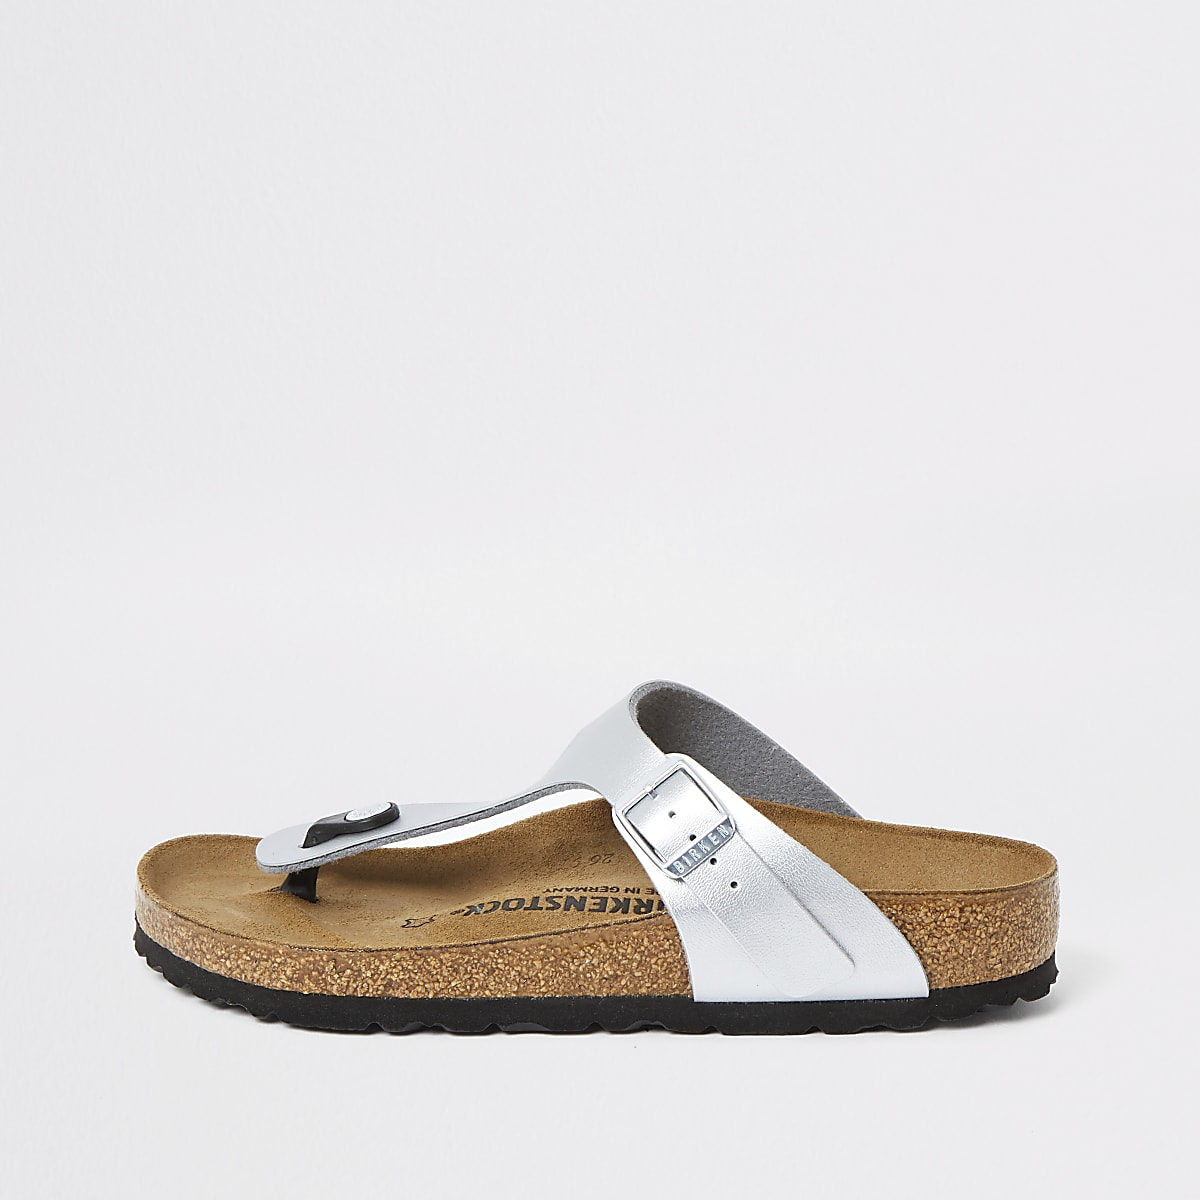 Birkenstock Gizeh silver toe thong sandals